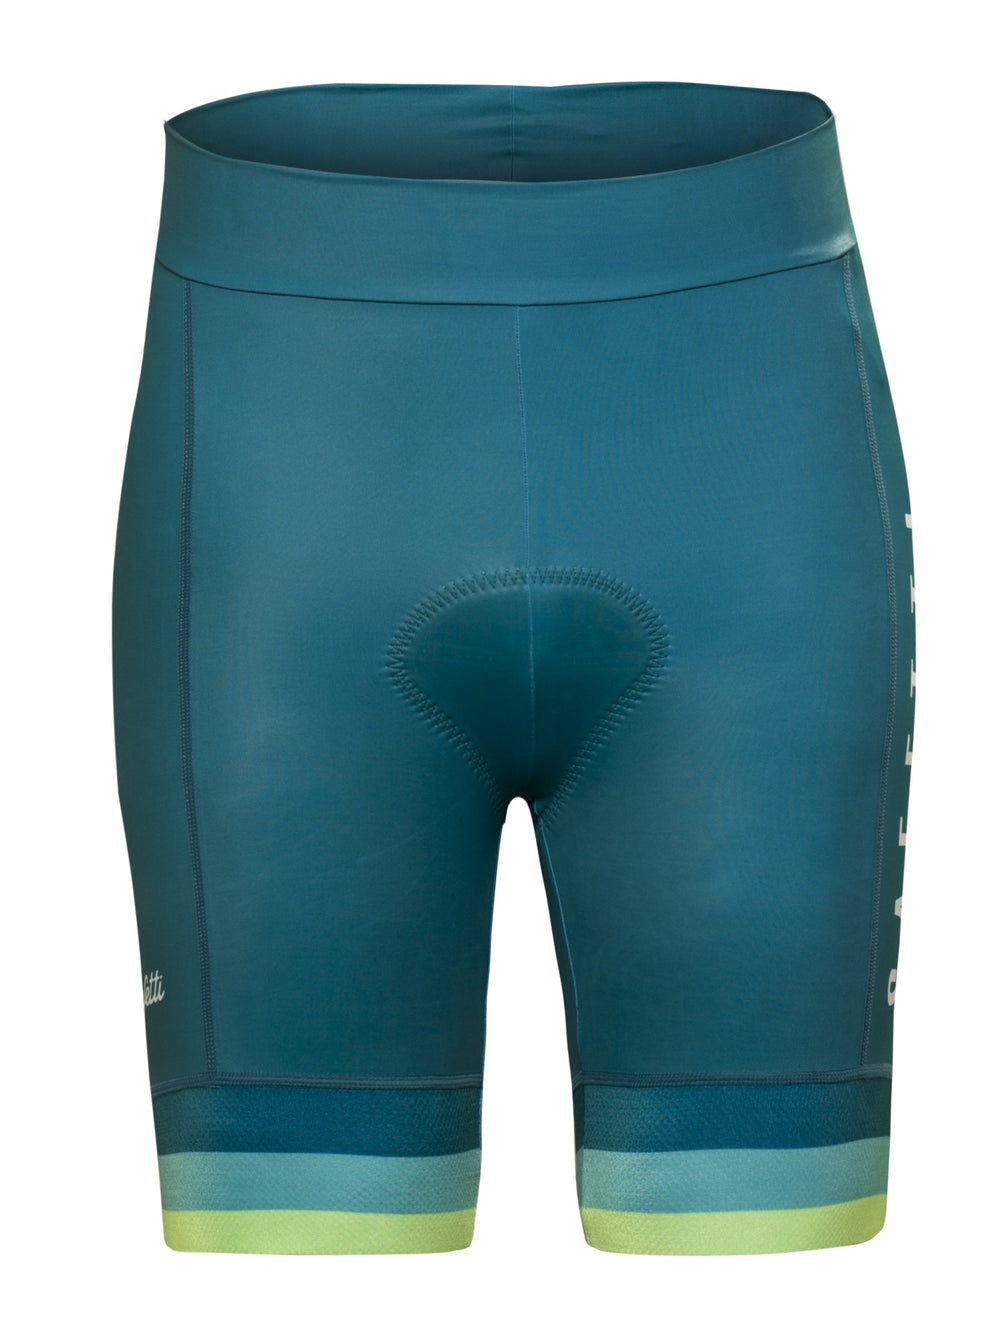 Premium - BIO Acqua Zero - Waist Band Triathlon Short